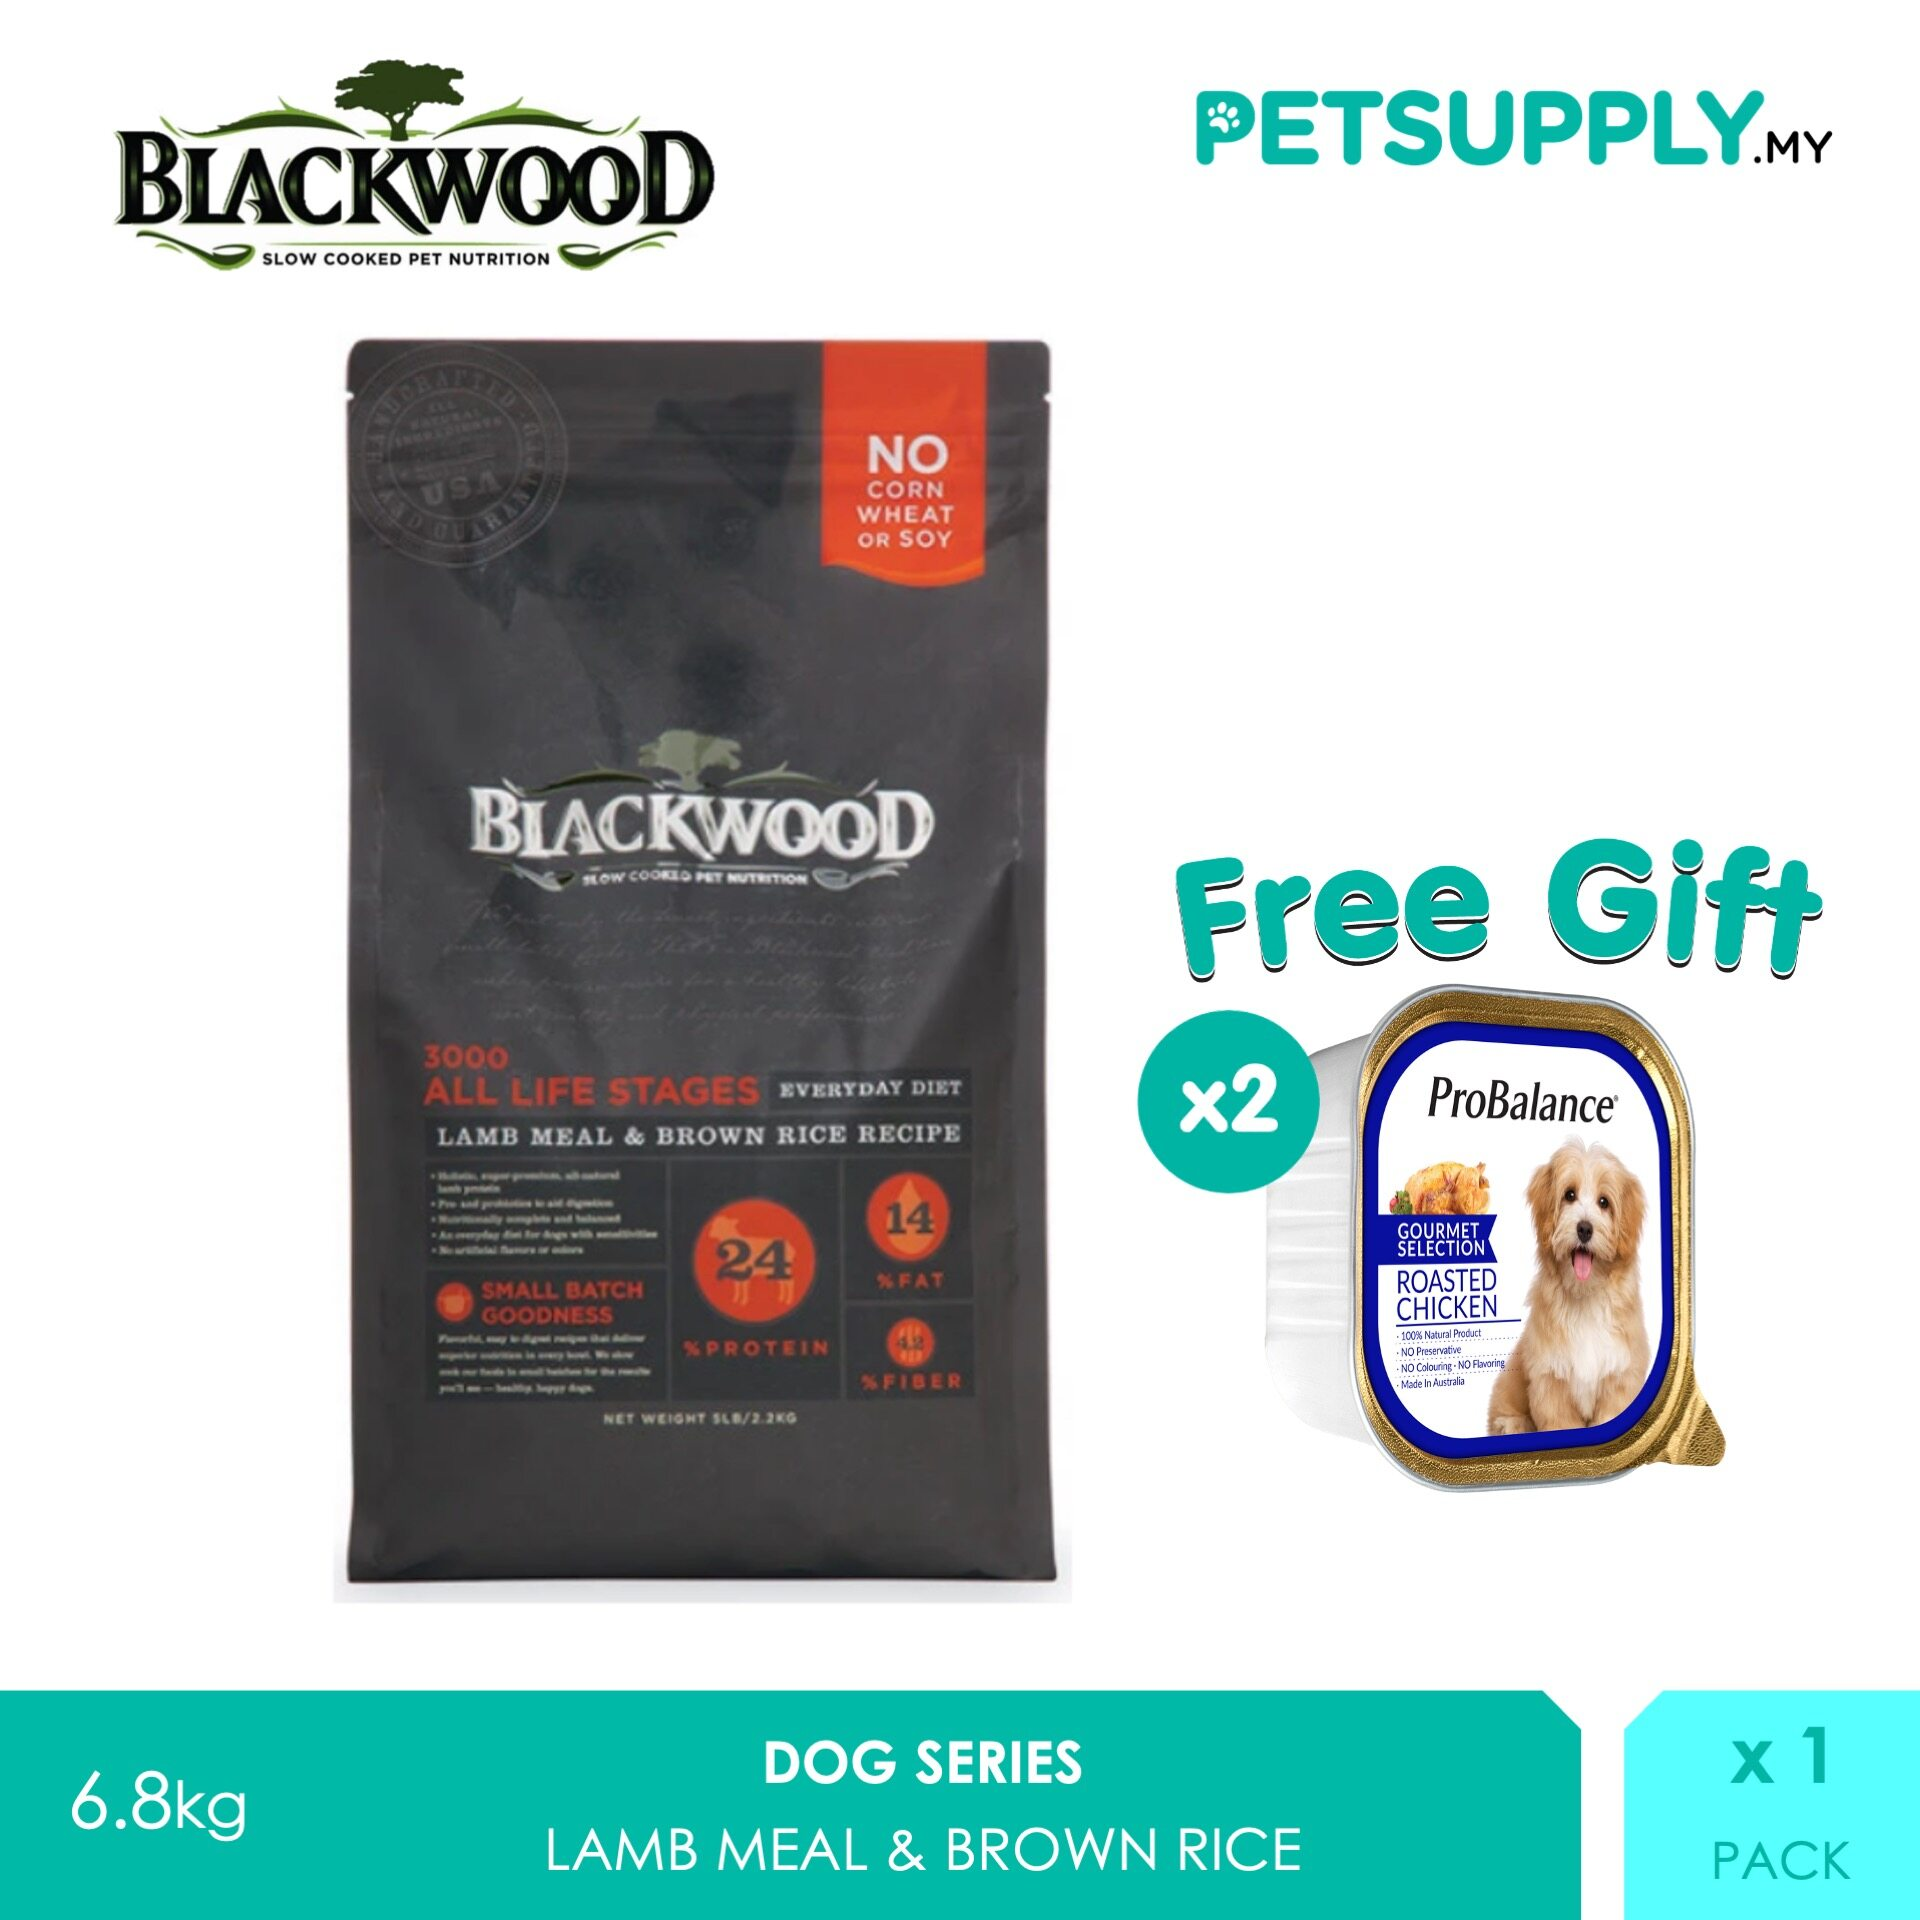 Buy 1 Free 2! Blackwood 3000 Dog All Life Stages Lamb Meal & Brown Rice Recipe 6.8kg [Dry Dog Food Treat Snack - Petsupply.my]